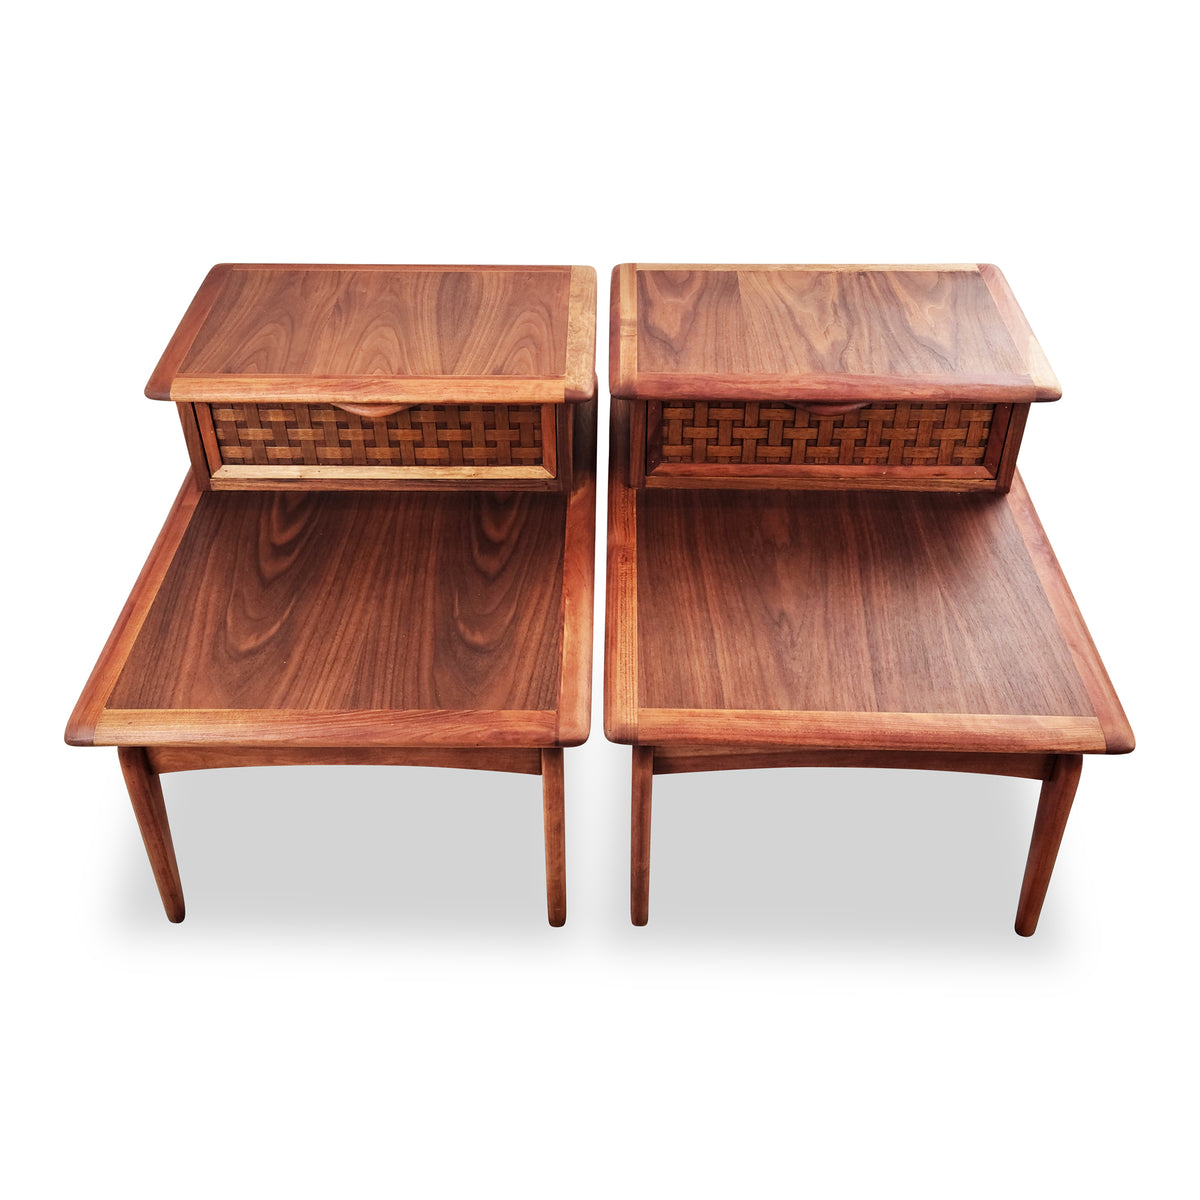 Walnut and Cherry Side Tables by Lane